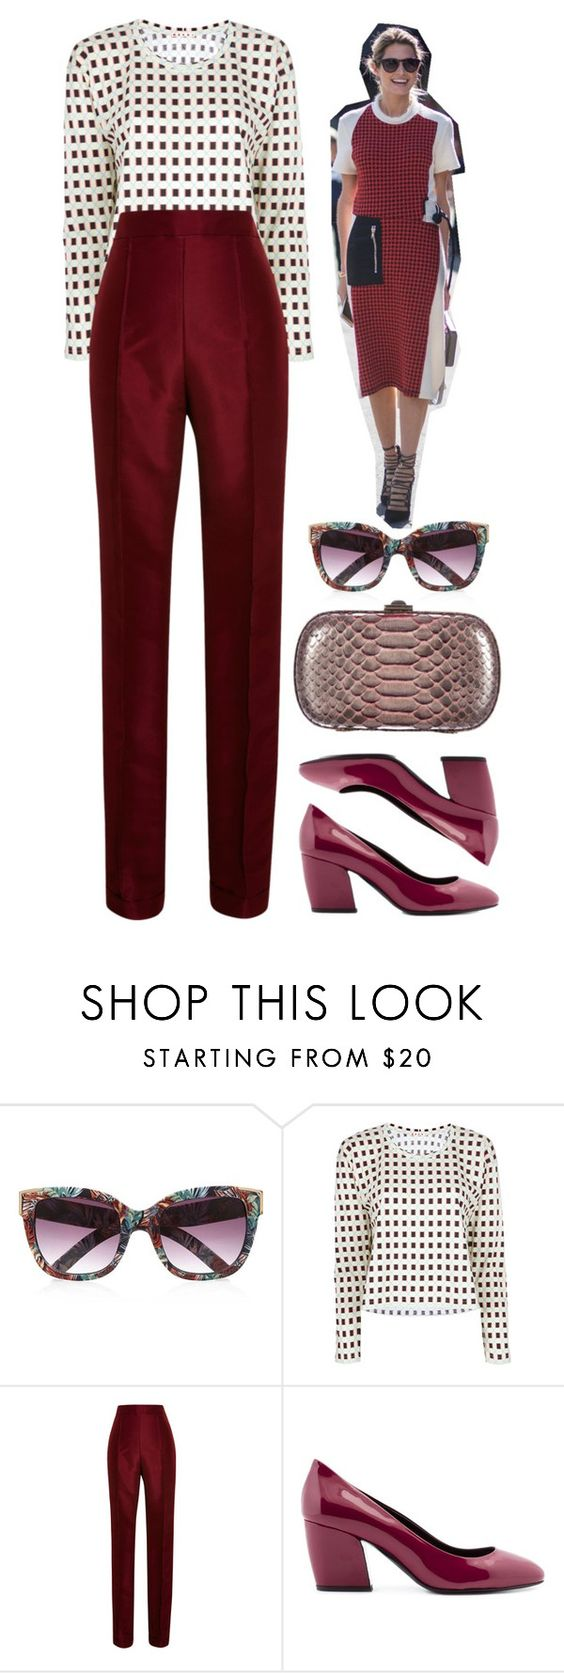 """Carmine"" by cherieaustin on Polyvore featuring River Island, Marni, Rosie Assoulin, Pierre Hardy, Kara Ross, RiverIsland, karaross, marni, PierreHardy and RosieAssoulin"